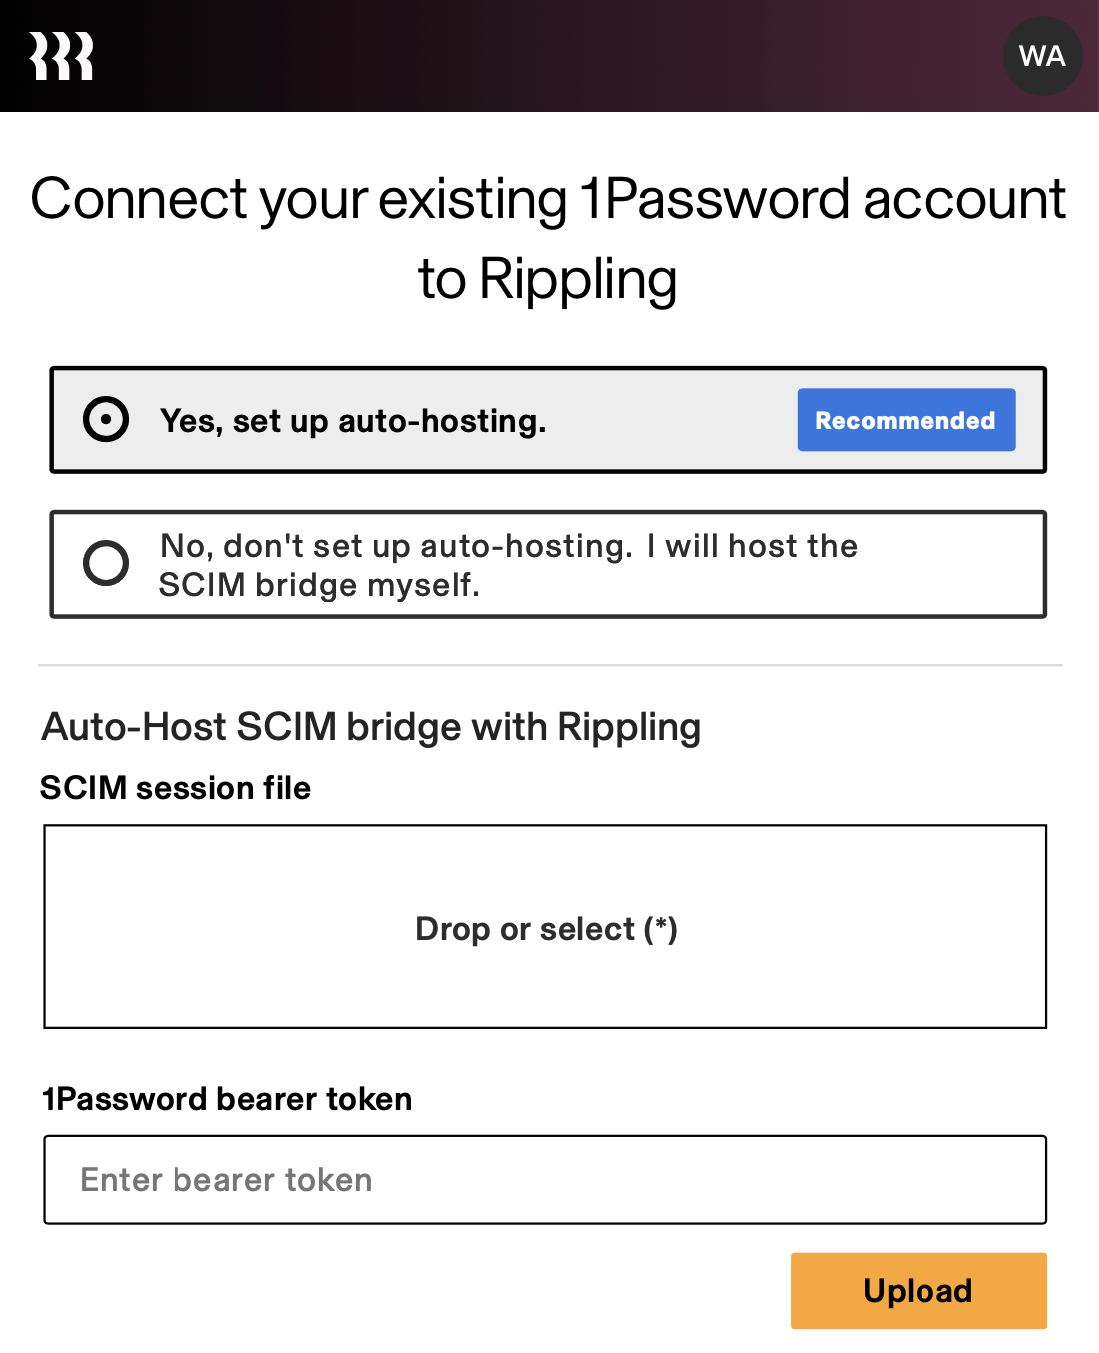 Drag your SCIM session file and enter your bearer token on the Rippling auto-hosting setup screen.